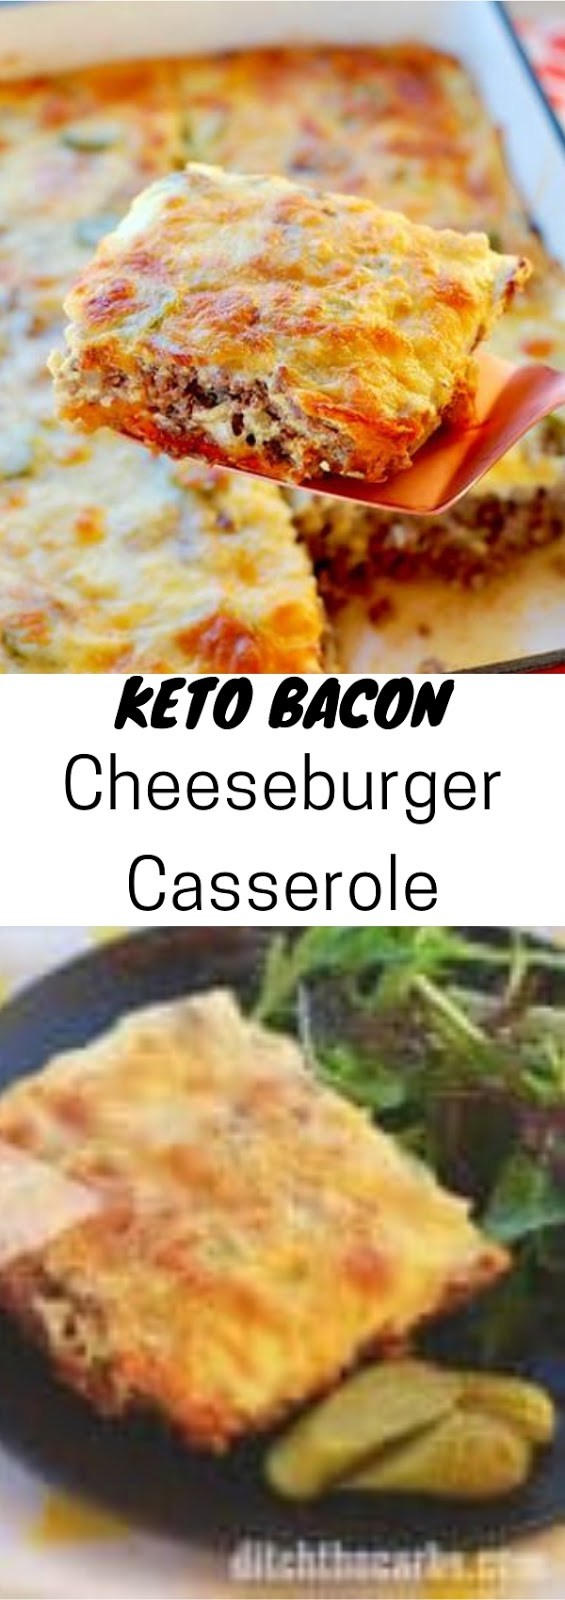 Keto Bacon Cheeseburger Casserole #keto #bacon #cheeseburger #casserole